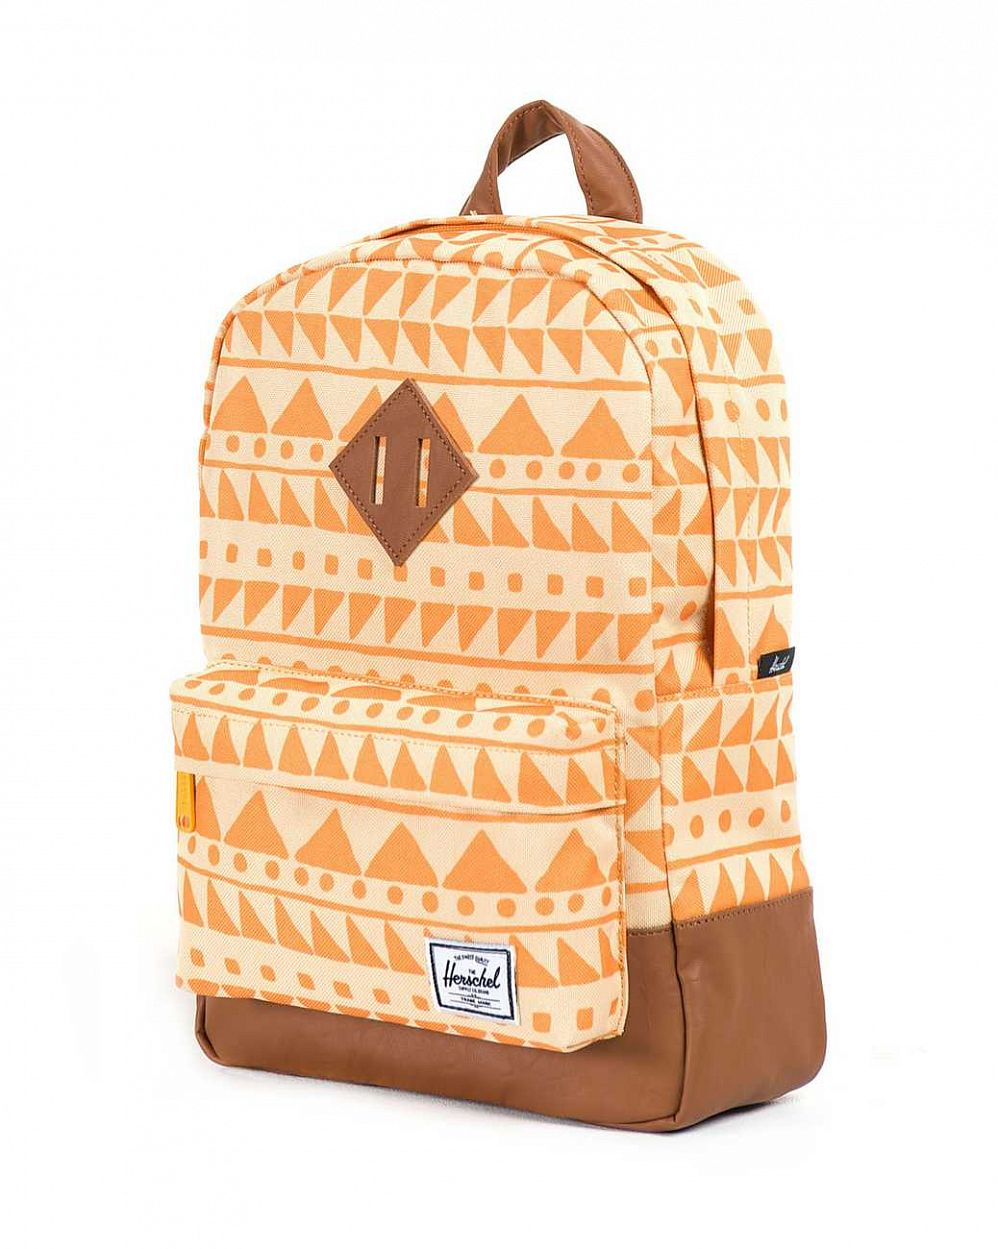 Рюкзак детский Herschel Heritage Kids Chevron Butterscotch отзывы